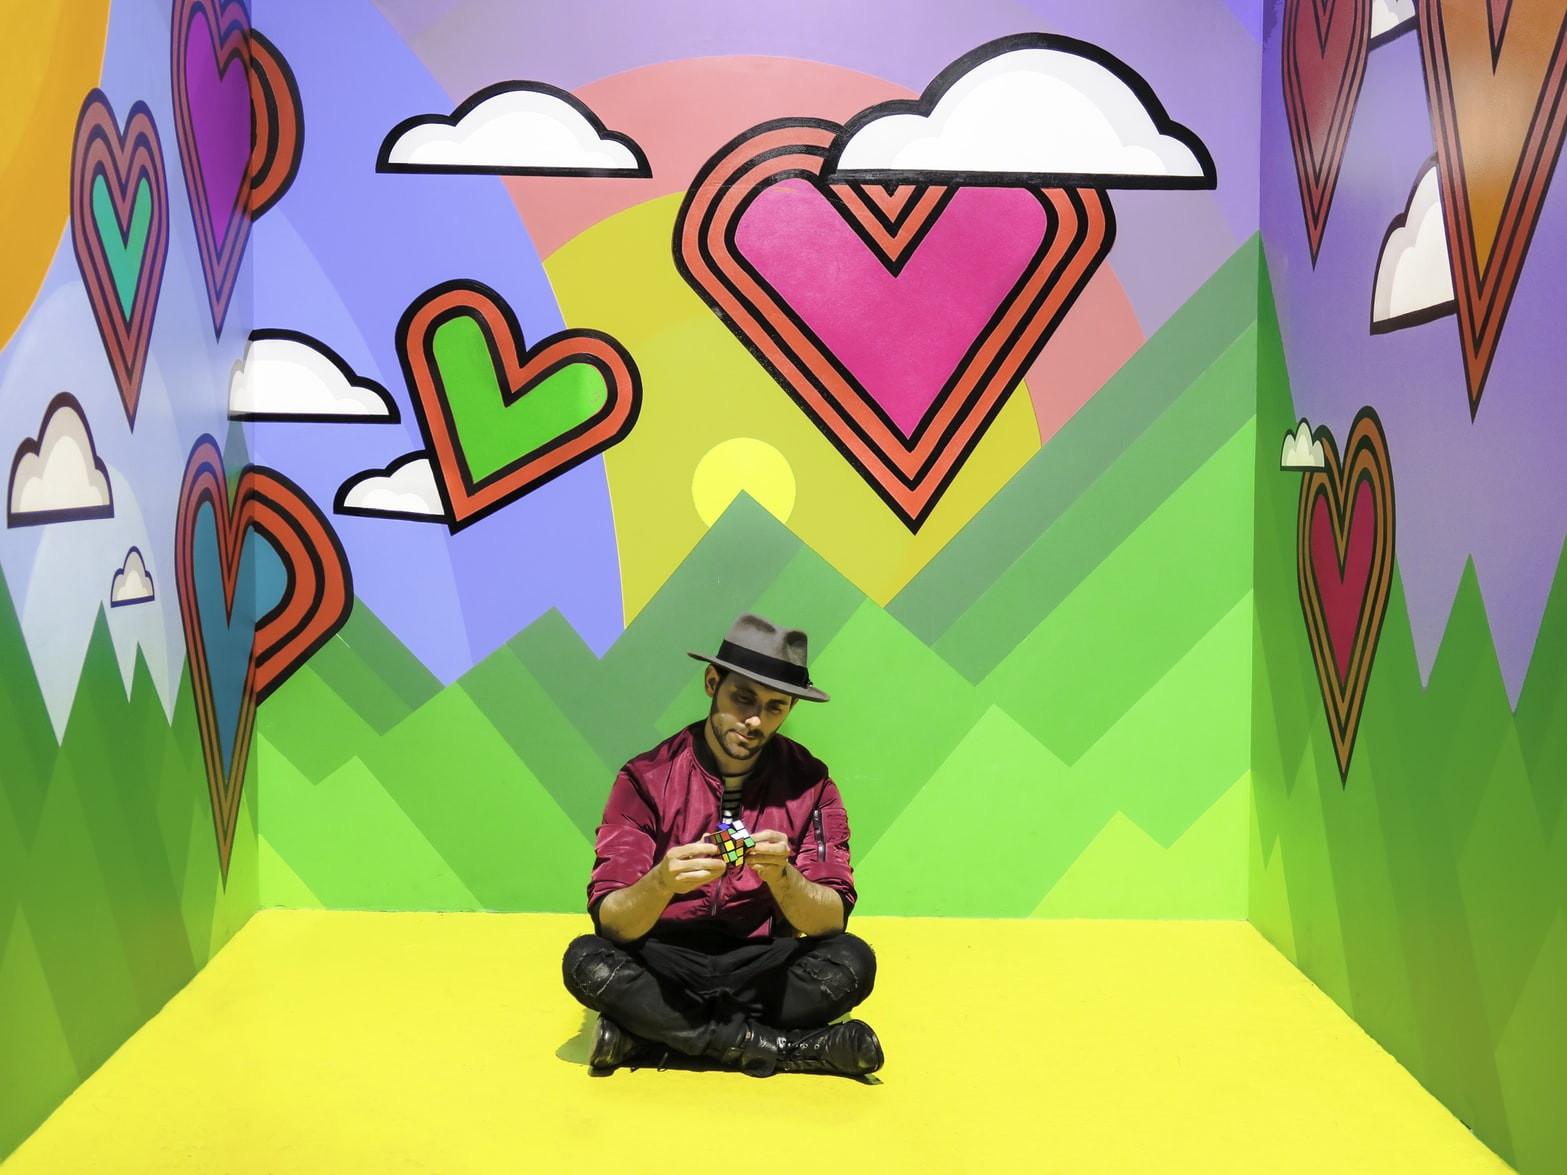 Man playing with Rubik's cube and sitting on floor in multicolored 3D wallpaper room